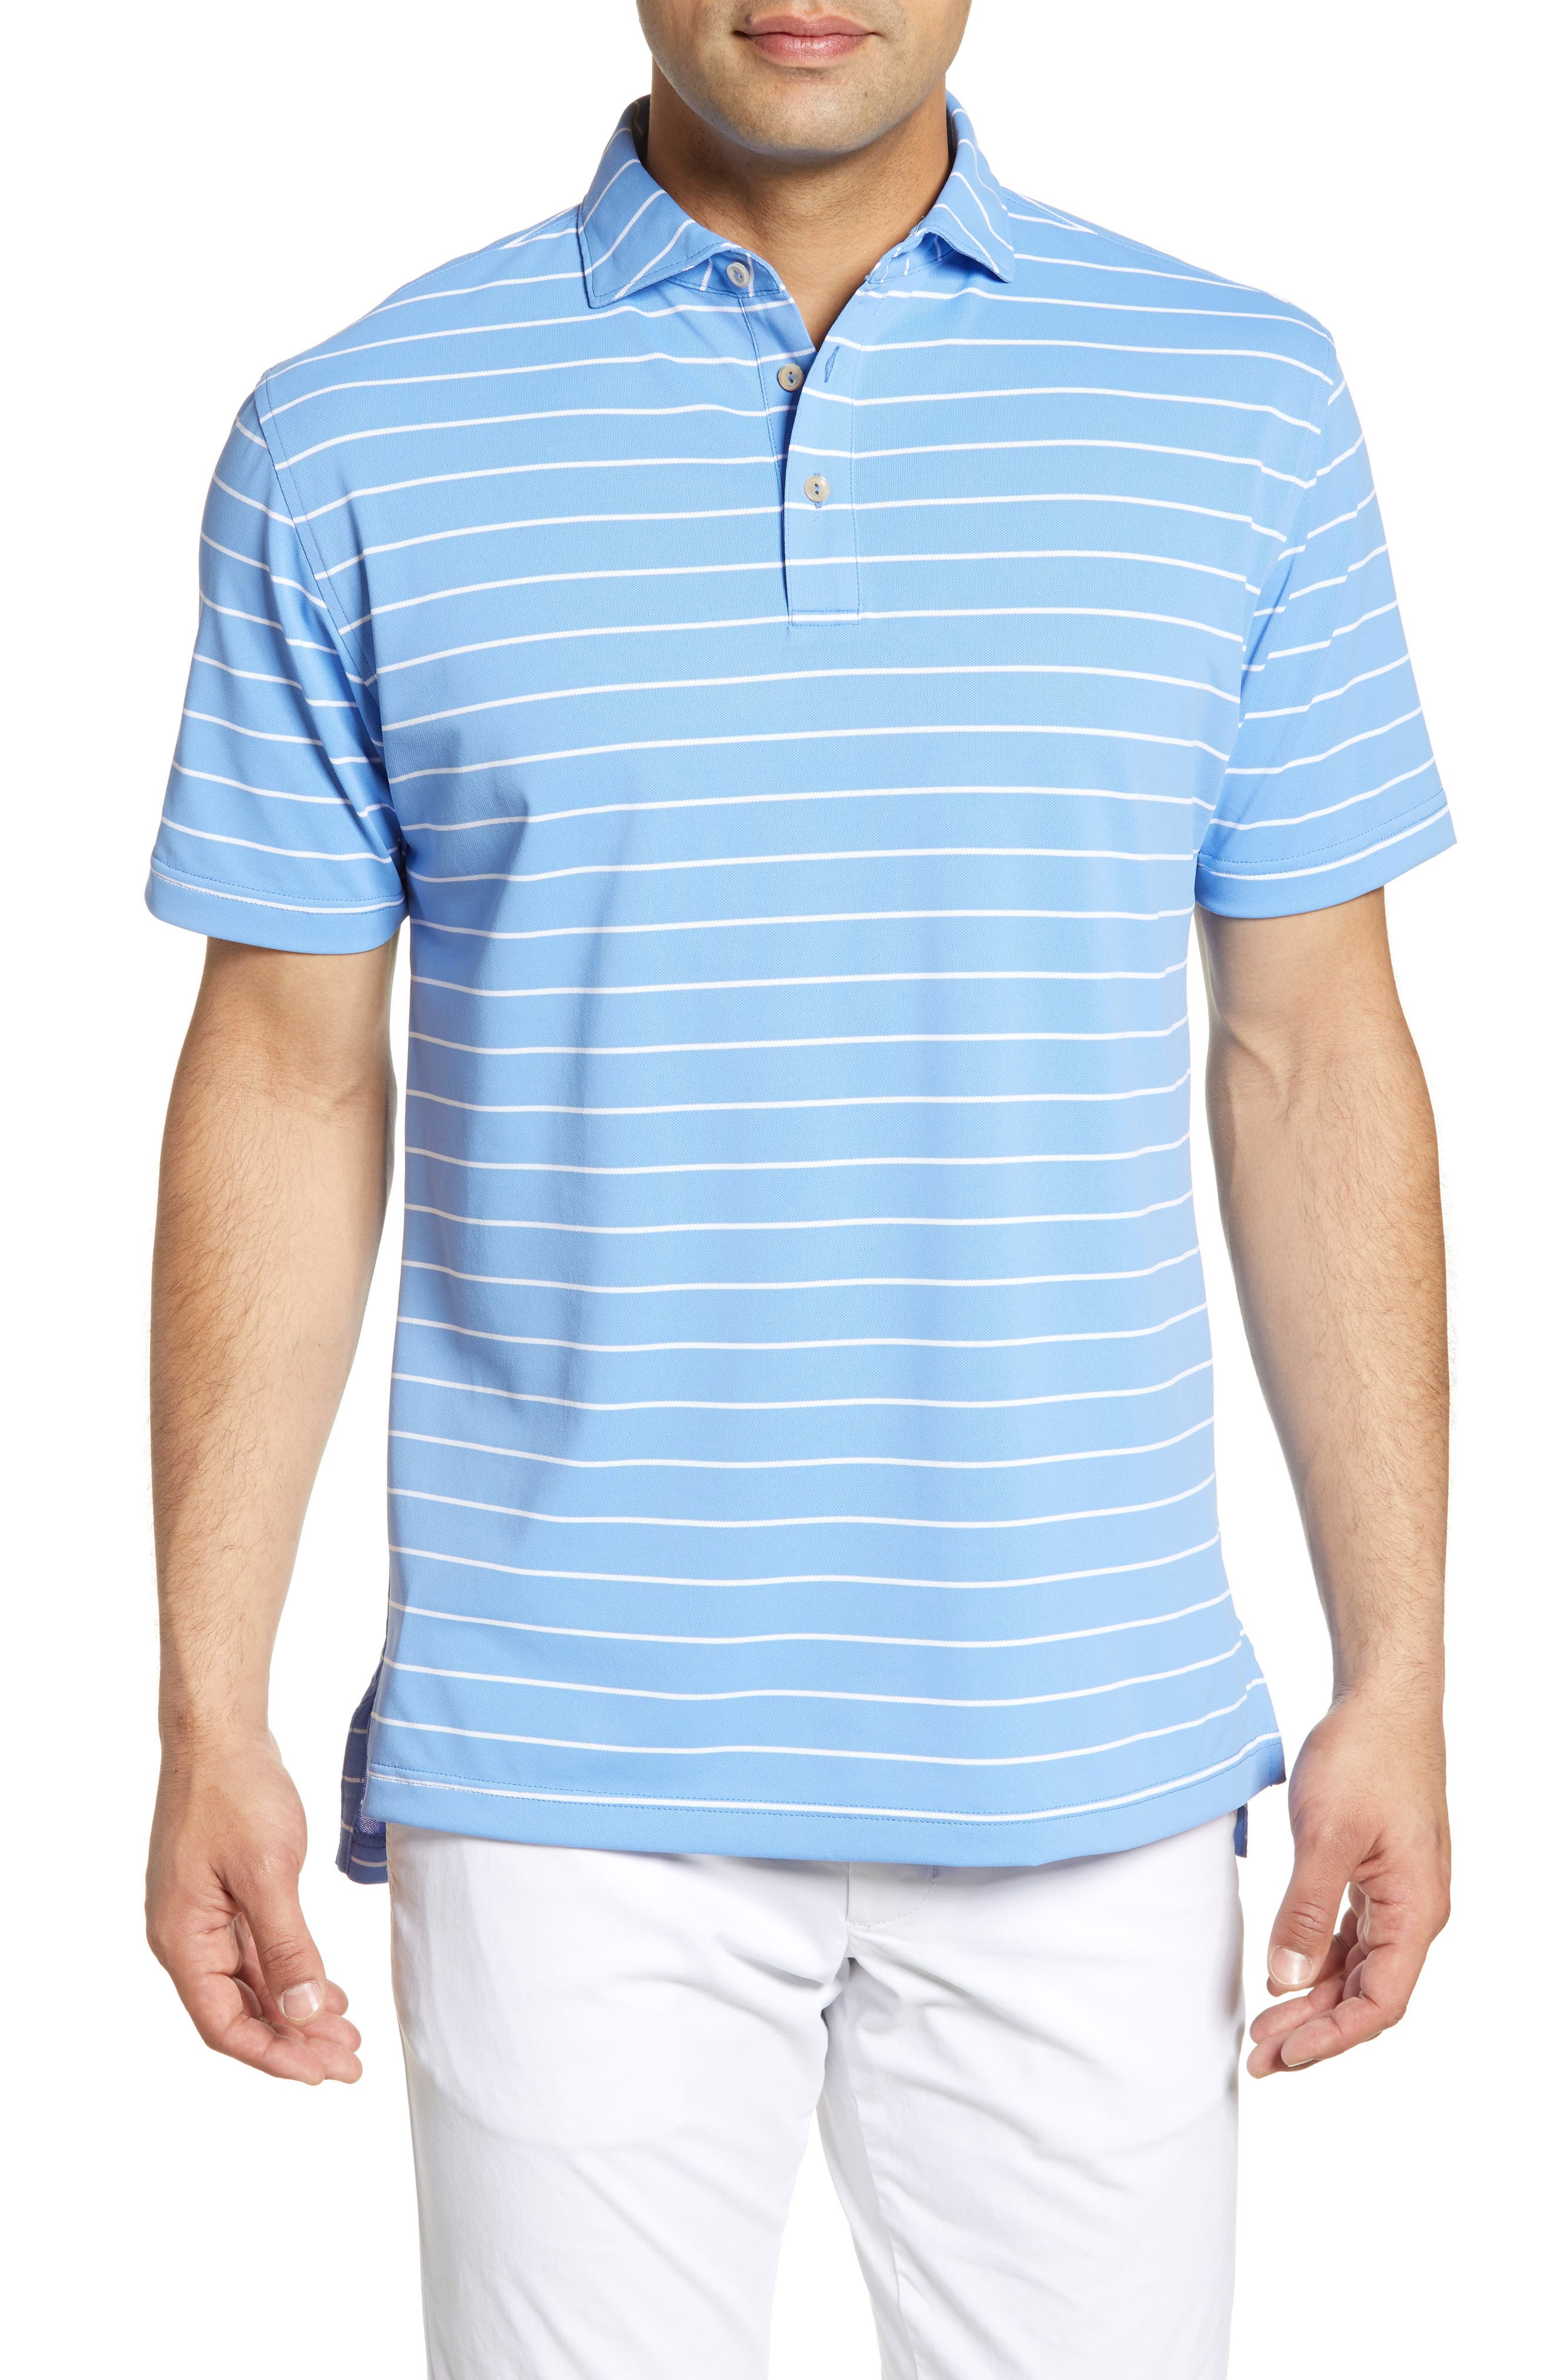 Men's Clothing Clothing, Shoes & Accessories Peter Millar Men's Green Blue Brown Striped Polo Shirt Size Xl Palo Alto Hills